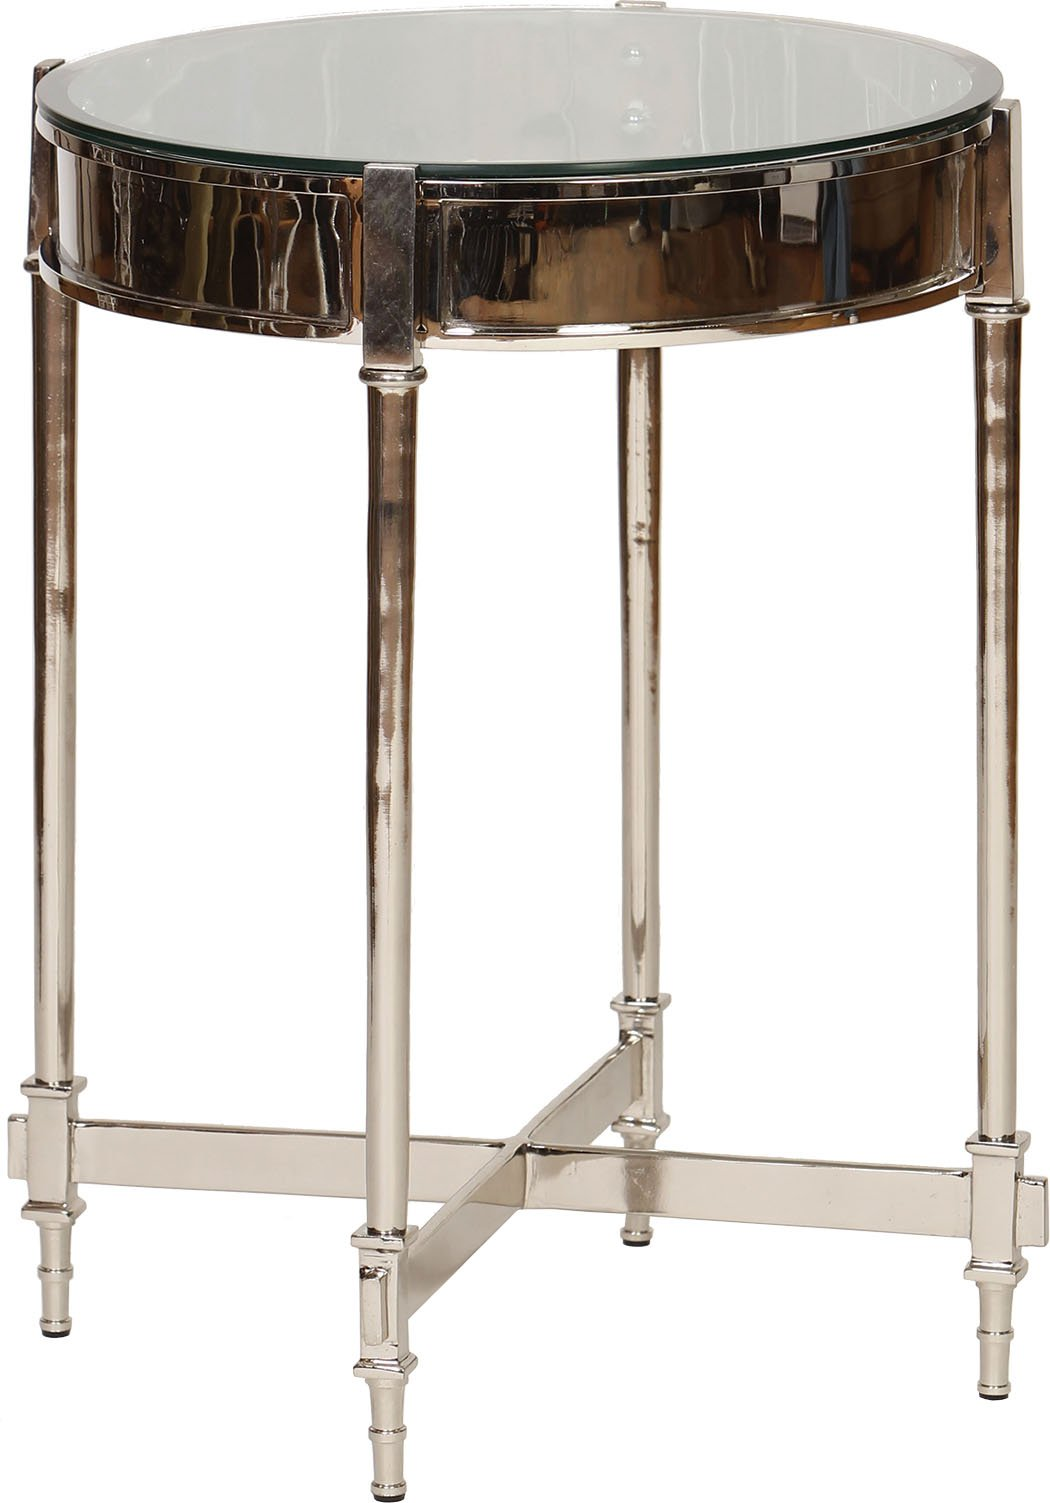 Knox and Harrison Nickel Side Table with Beveled Glass Top